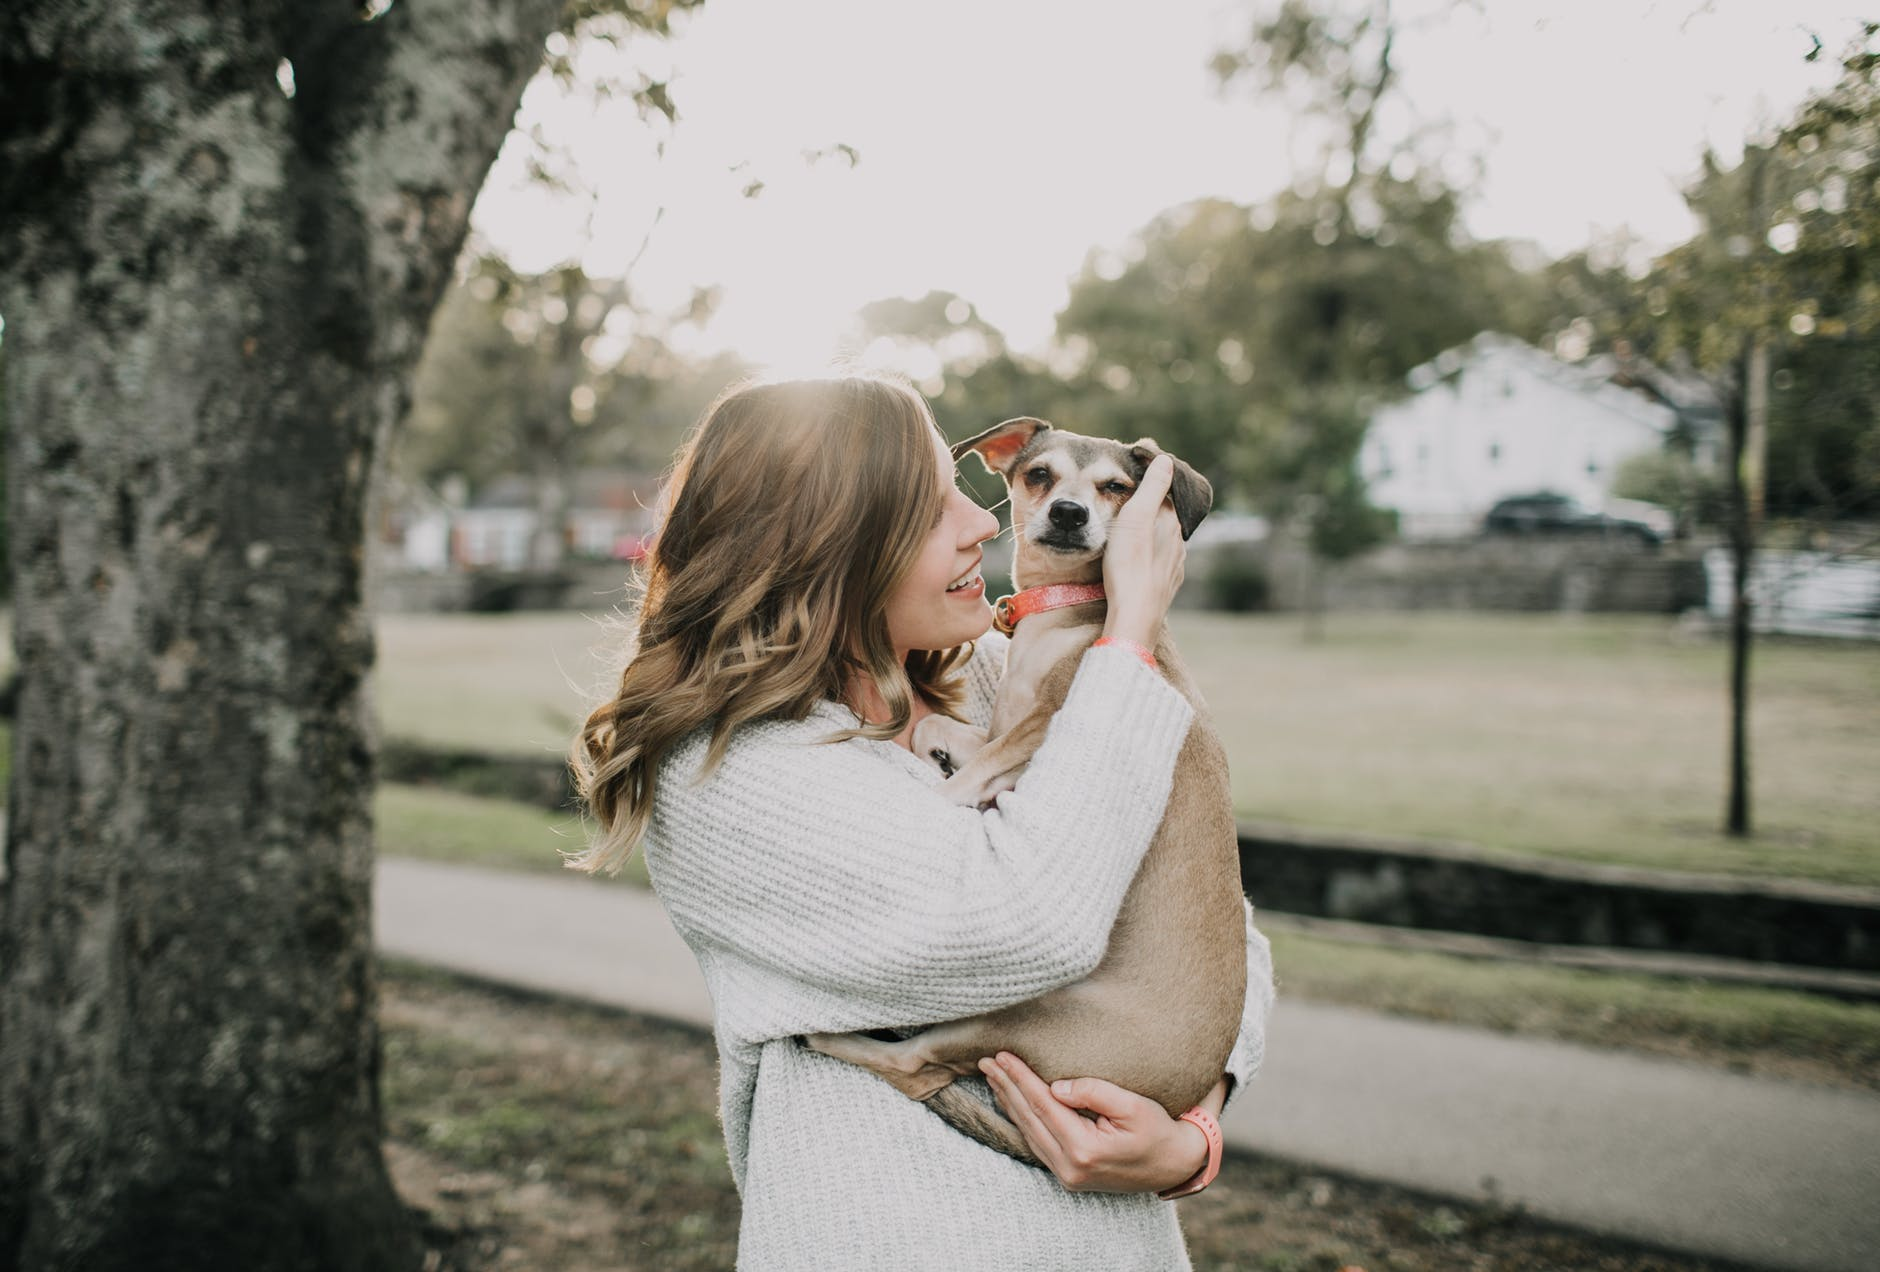 smiling woman carrying dog near tree